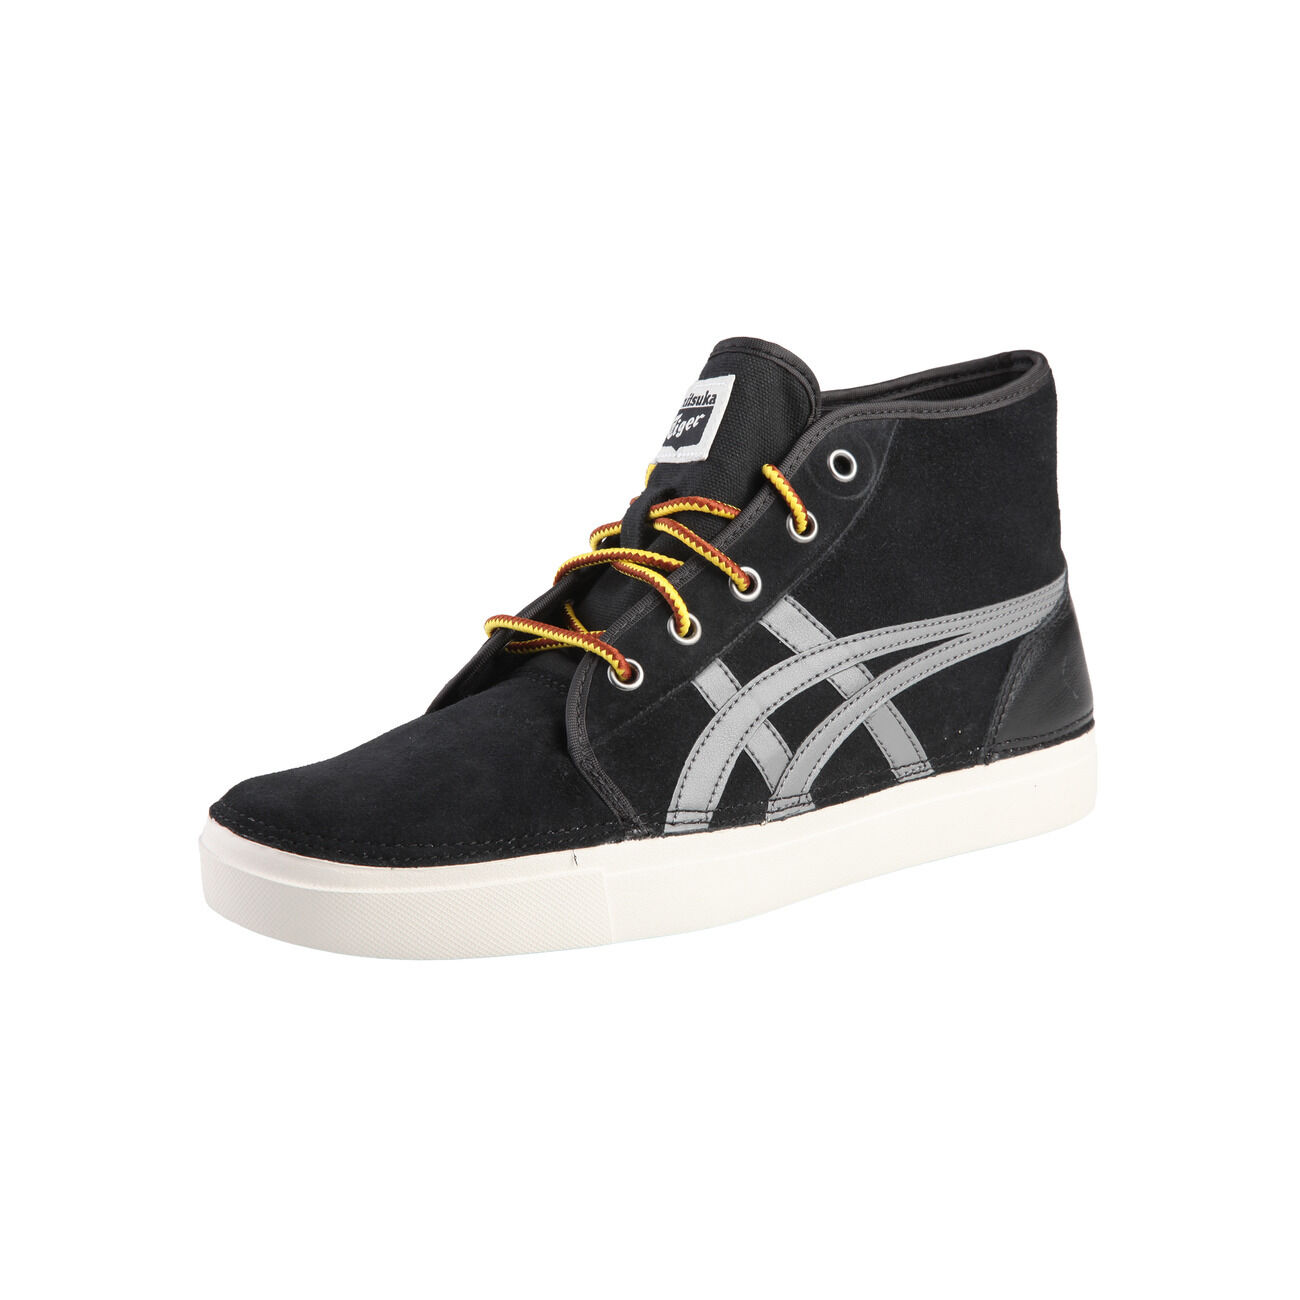 Asics Onitsuka Tiger CLAVERTON UK6, Unisex Sneakers, Turnschuhe EU40, 42.5, UK6, CLAVERTON 8 680aea